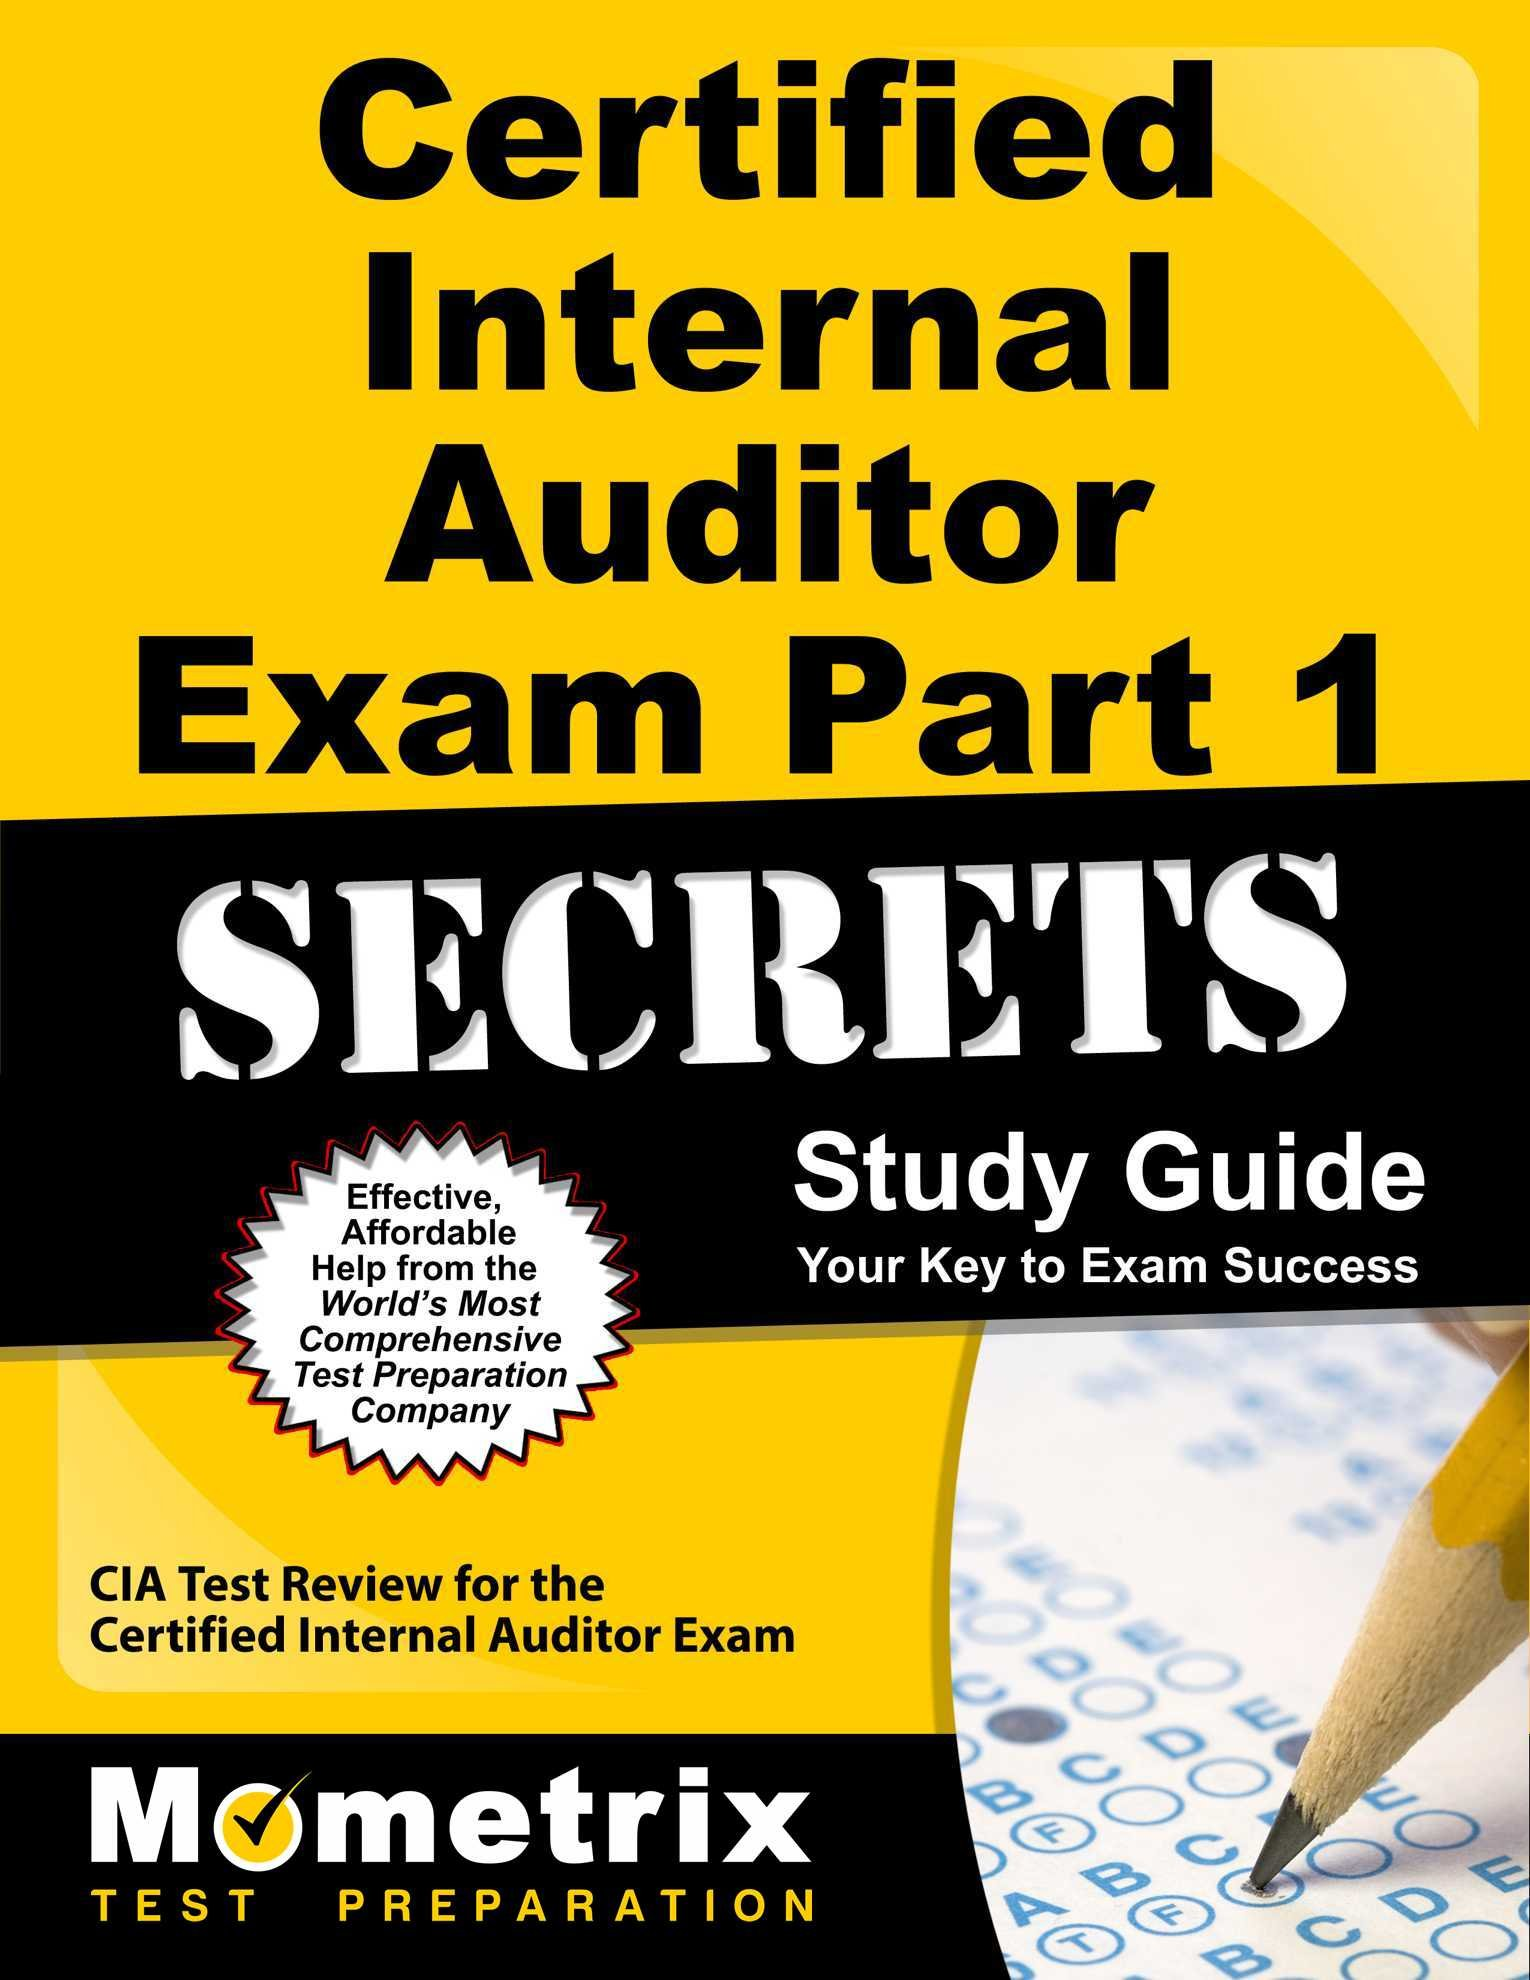 certified internal auditor exam part 1 secrets study guide cia test review for the certified internal auditor exam cia exam secrets tes 9781609713522